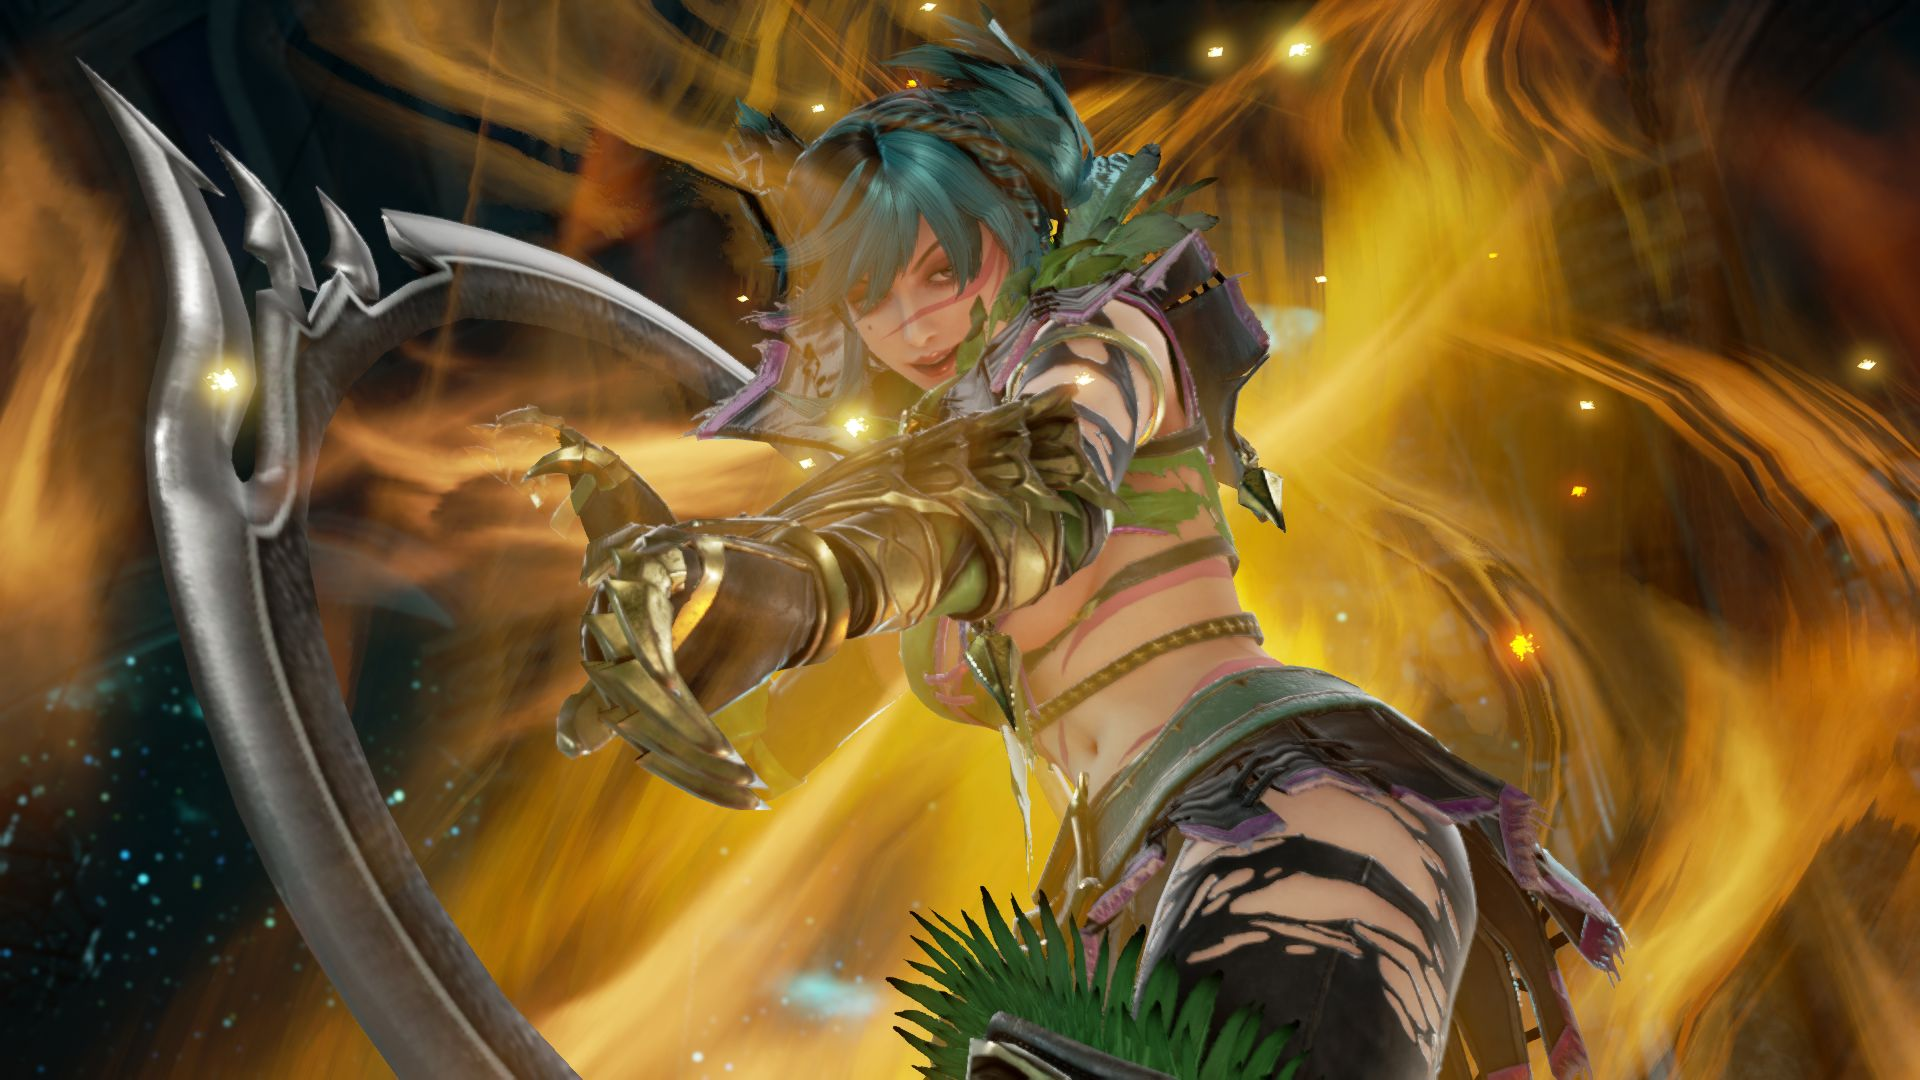 So Why Is Tira a DLC Character in SoulCalibur VI? A Producer